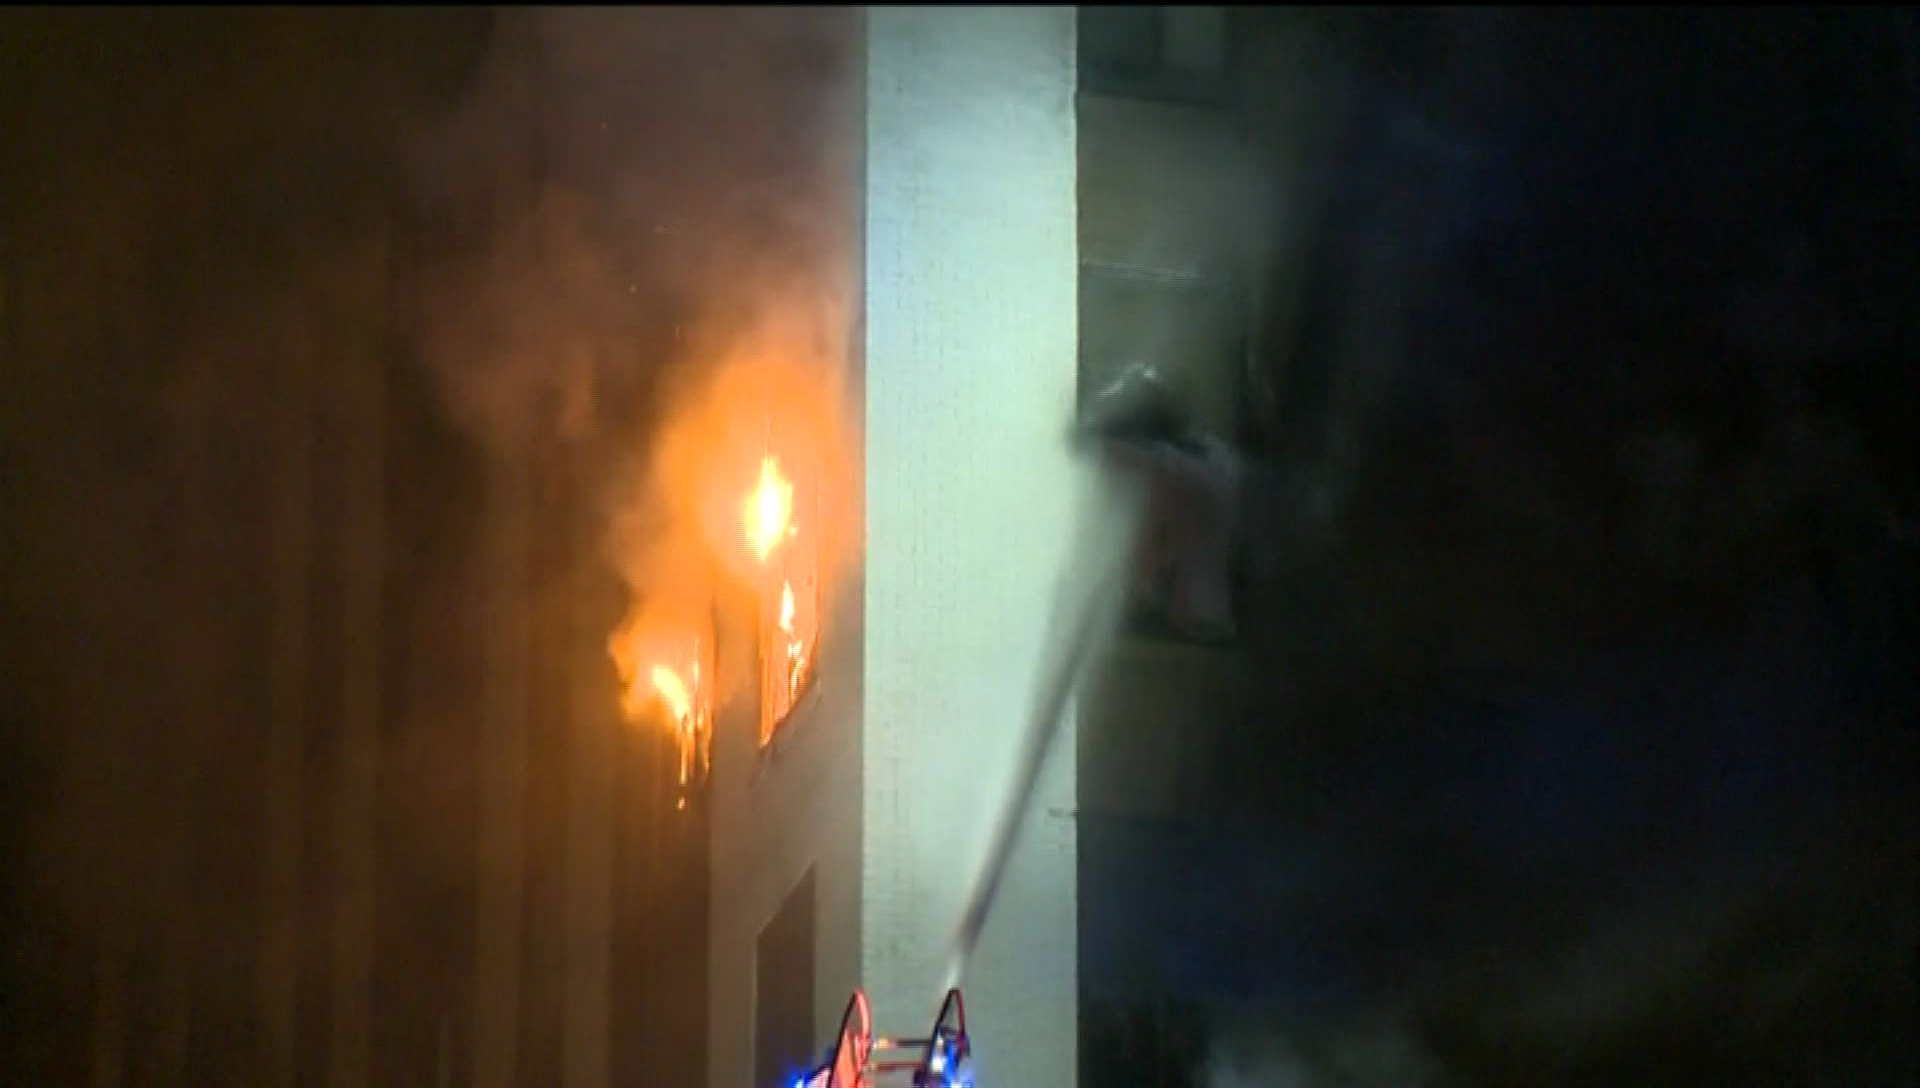 At least 1 woman dies in 7-alarm fire at Pa. high-rise